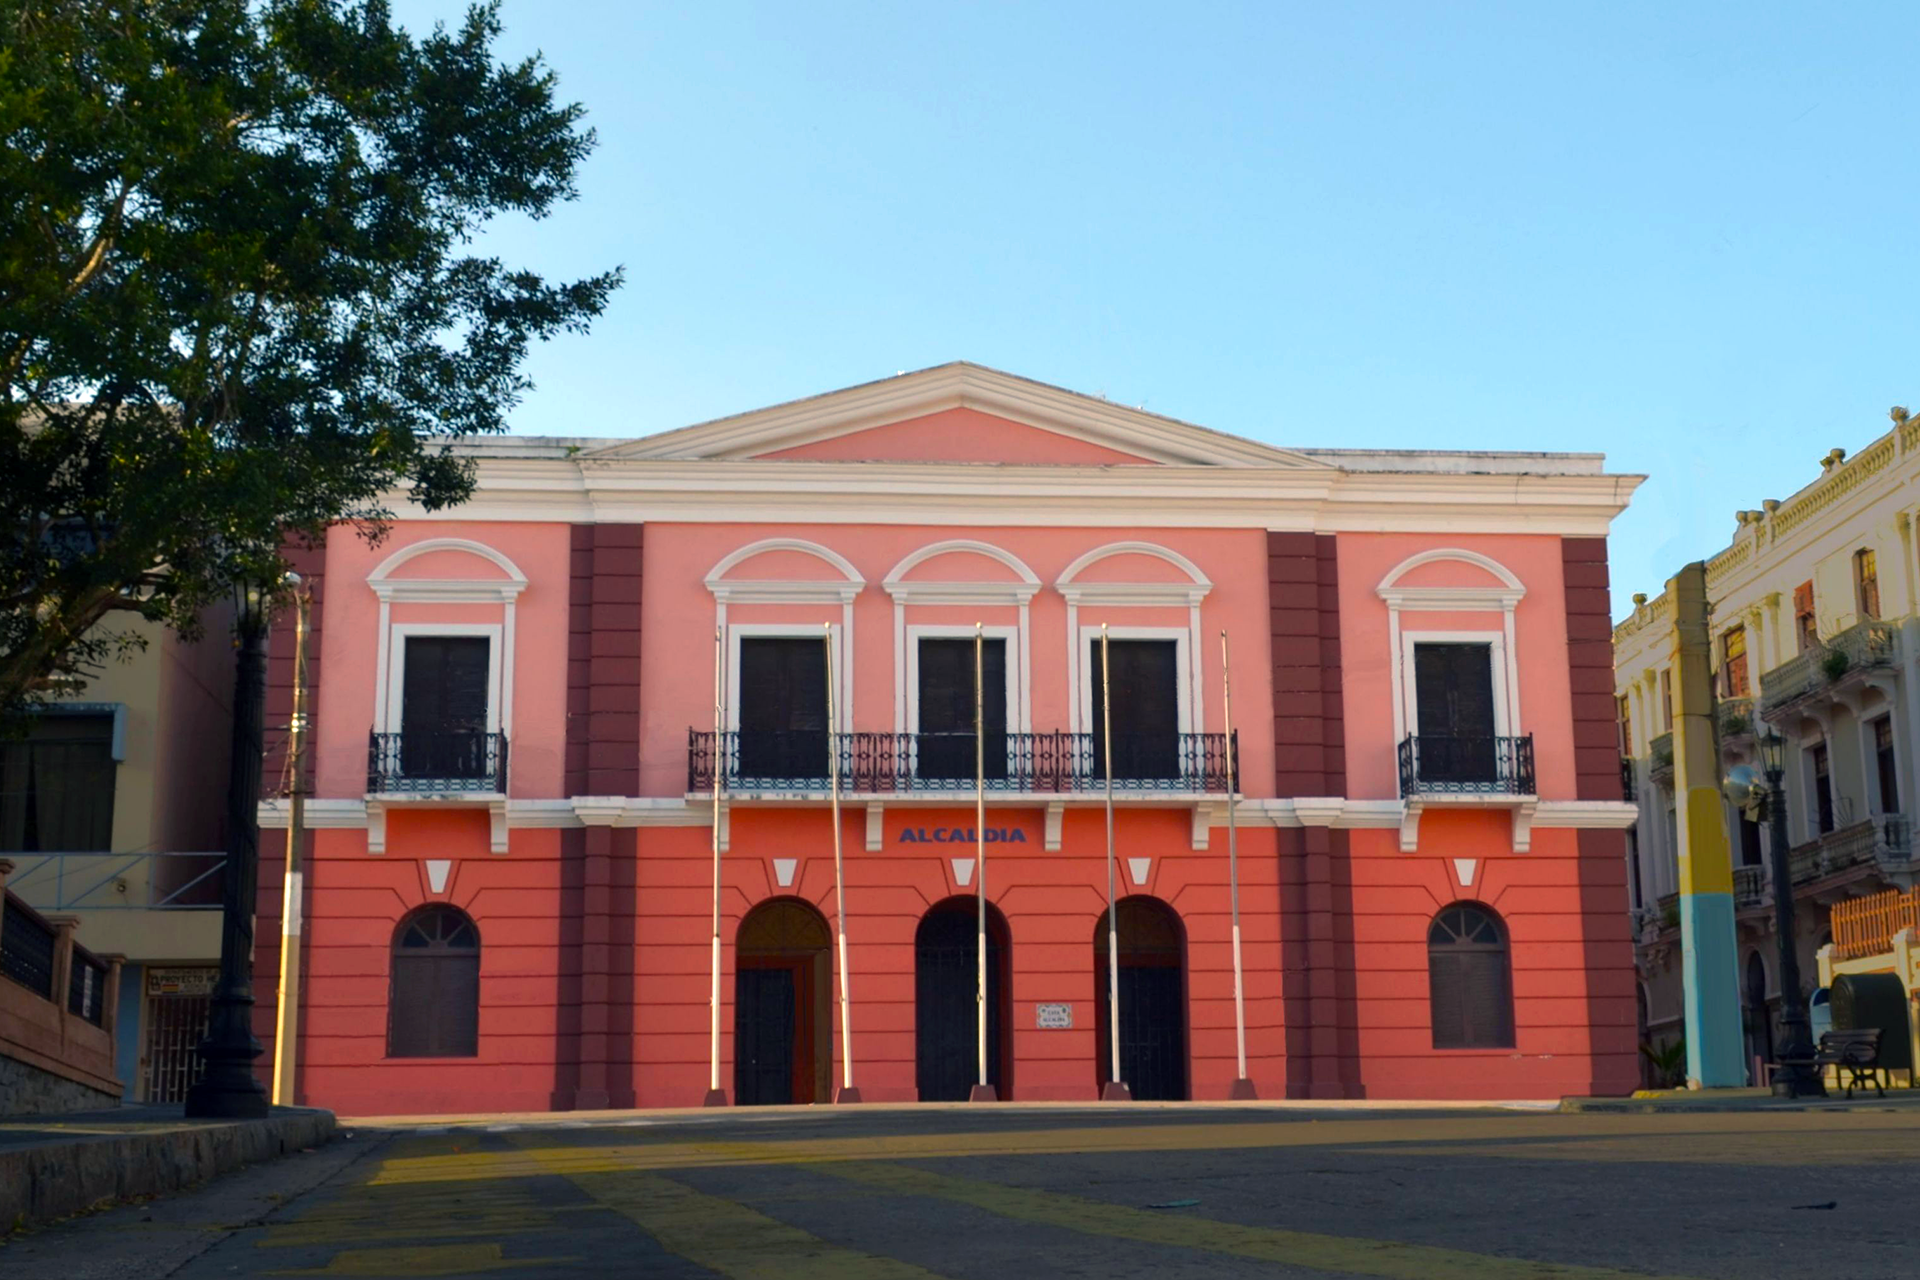 Arecibo City Hall